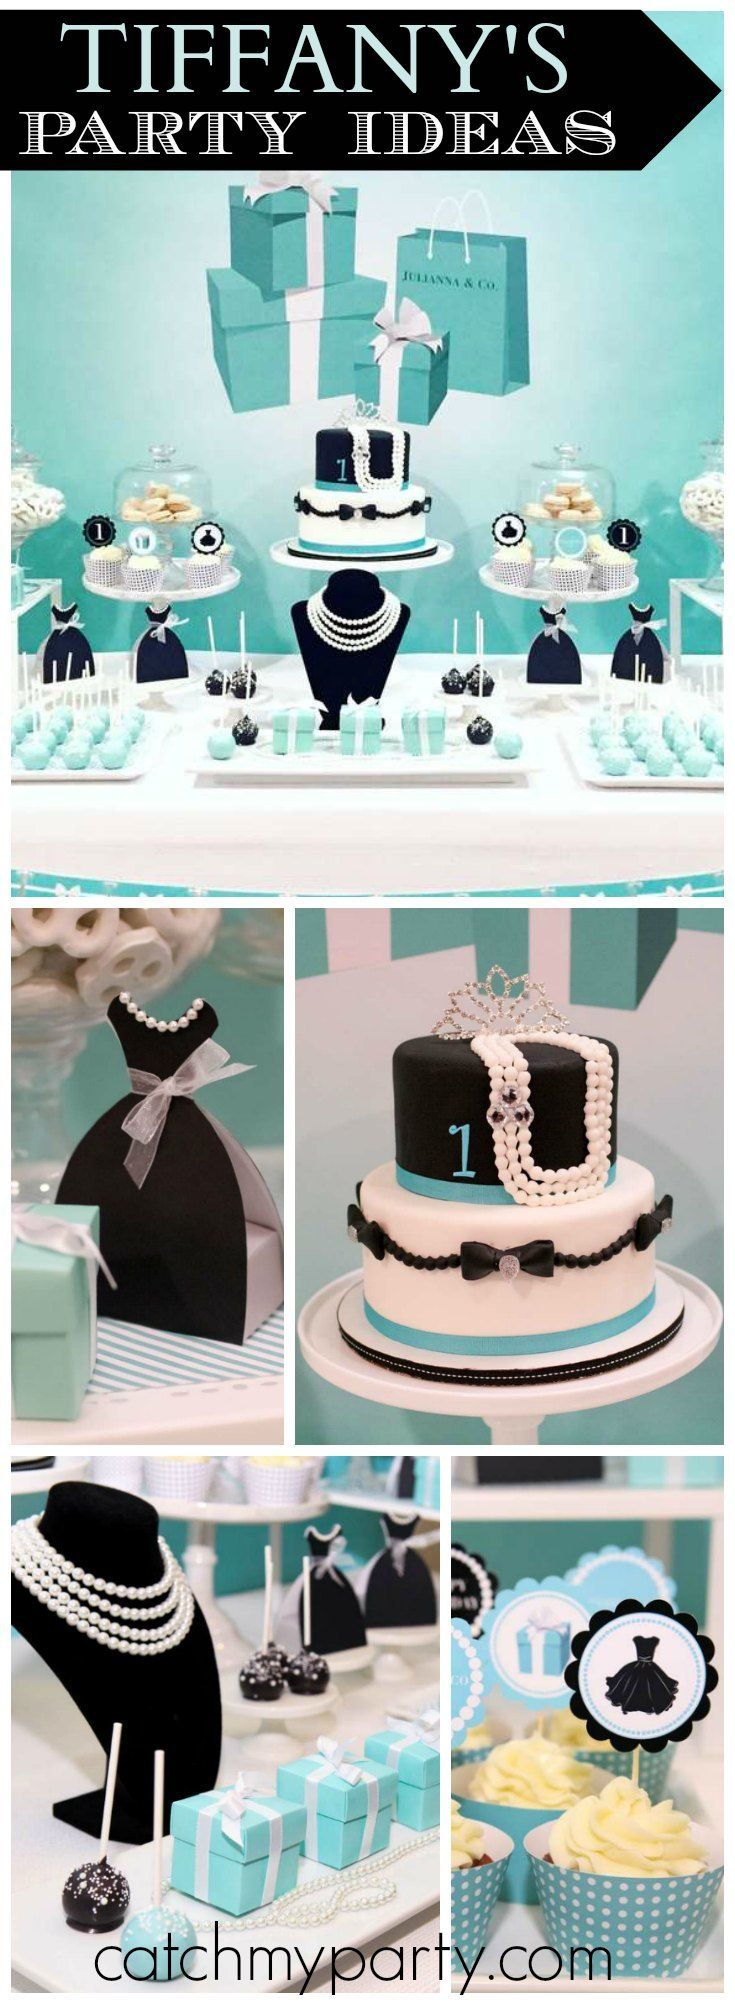 How adorable is this Tiffany themed first birthday party?! See more party ideas at CatchMyParty.com!